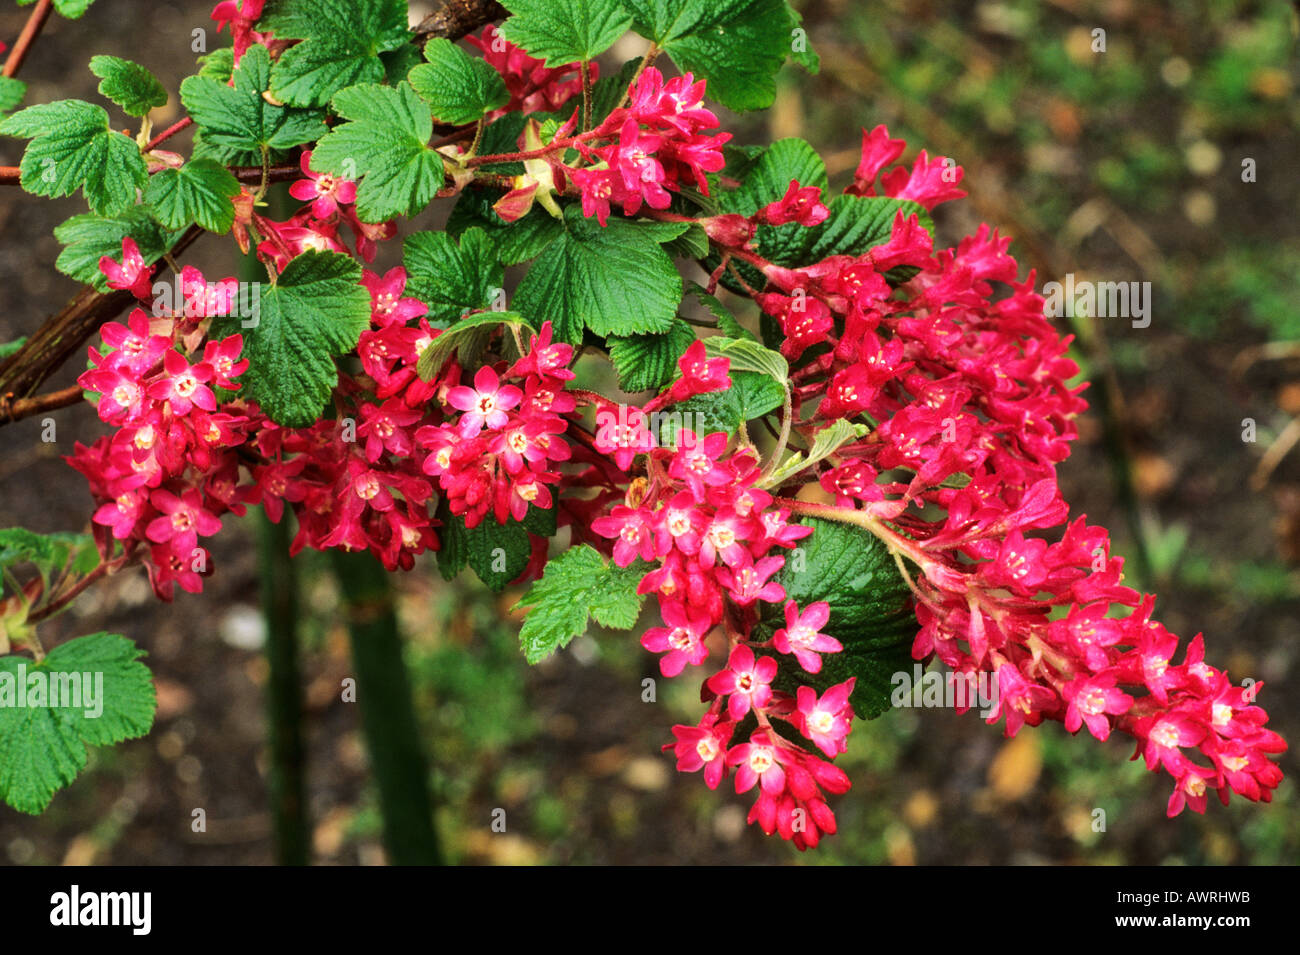 ribes sanguineum 39 king edward vii 39 flowering currant bush red stock photo 9509978 alamy. Black Bedroom Furniture Sets. Home Design Ideas